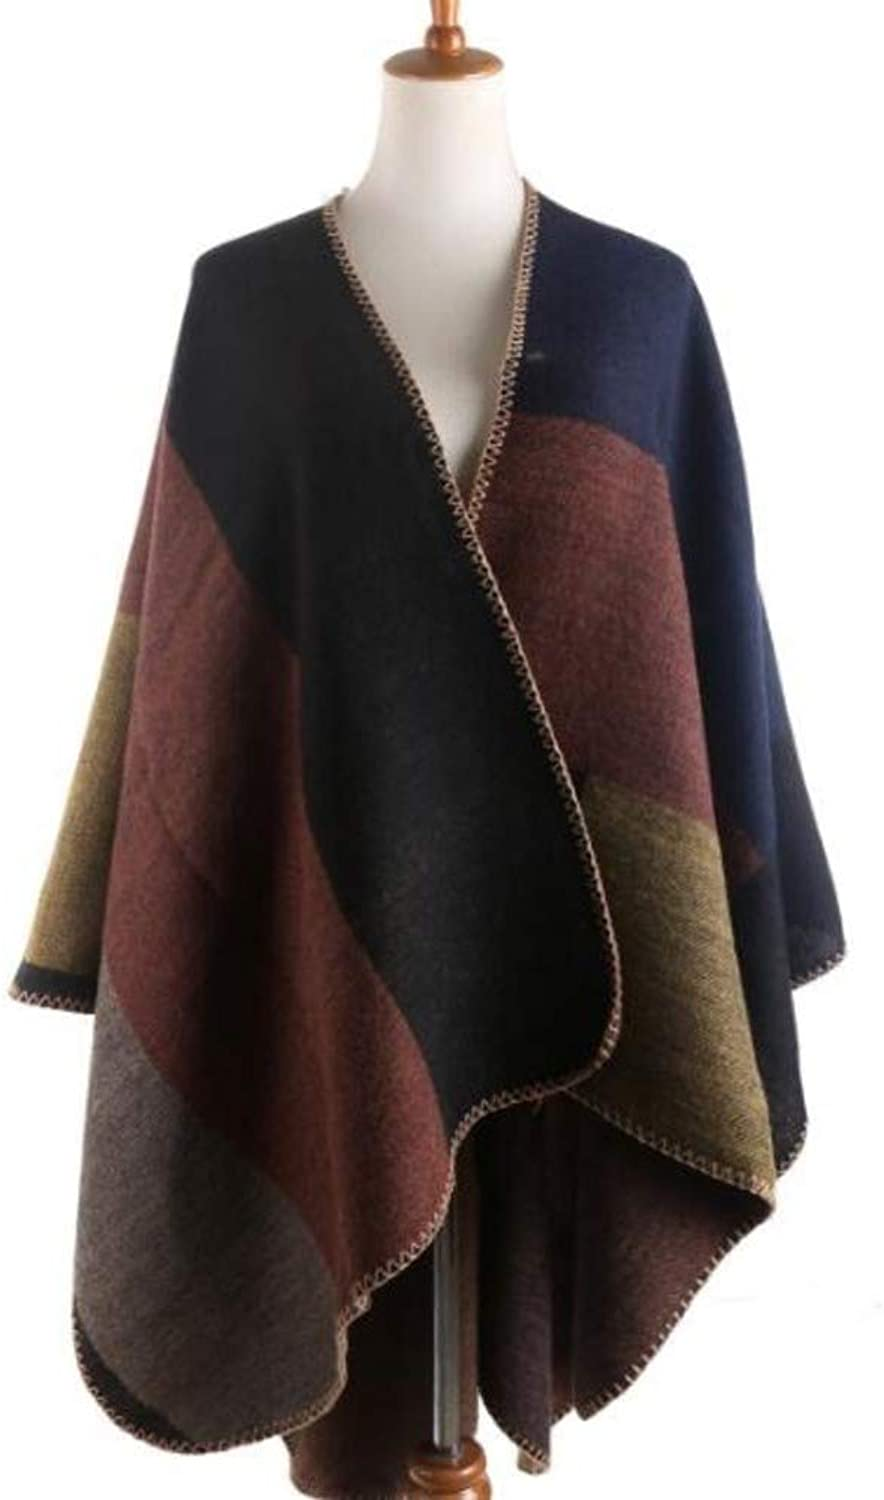 Ultra Soft colorBlock Wrap Shawl Scarf w Blanket Stitched Edge  Deep Delicious Warm colors Go With Everything